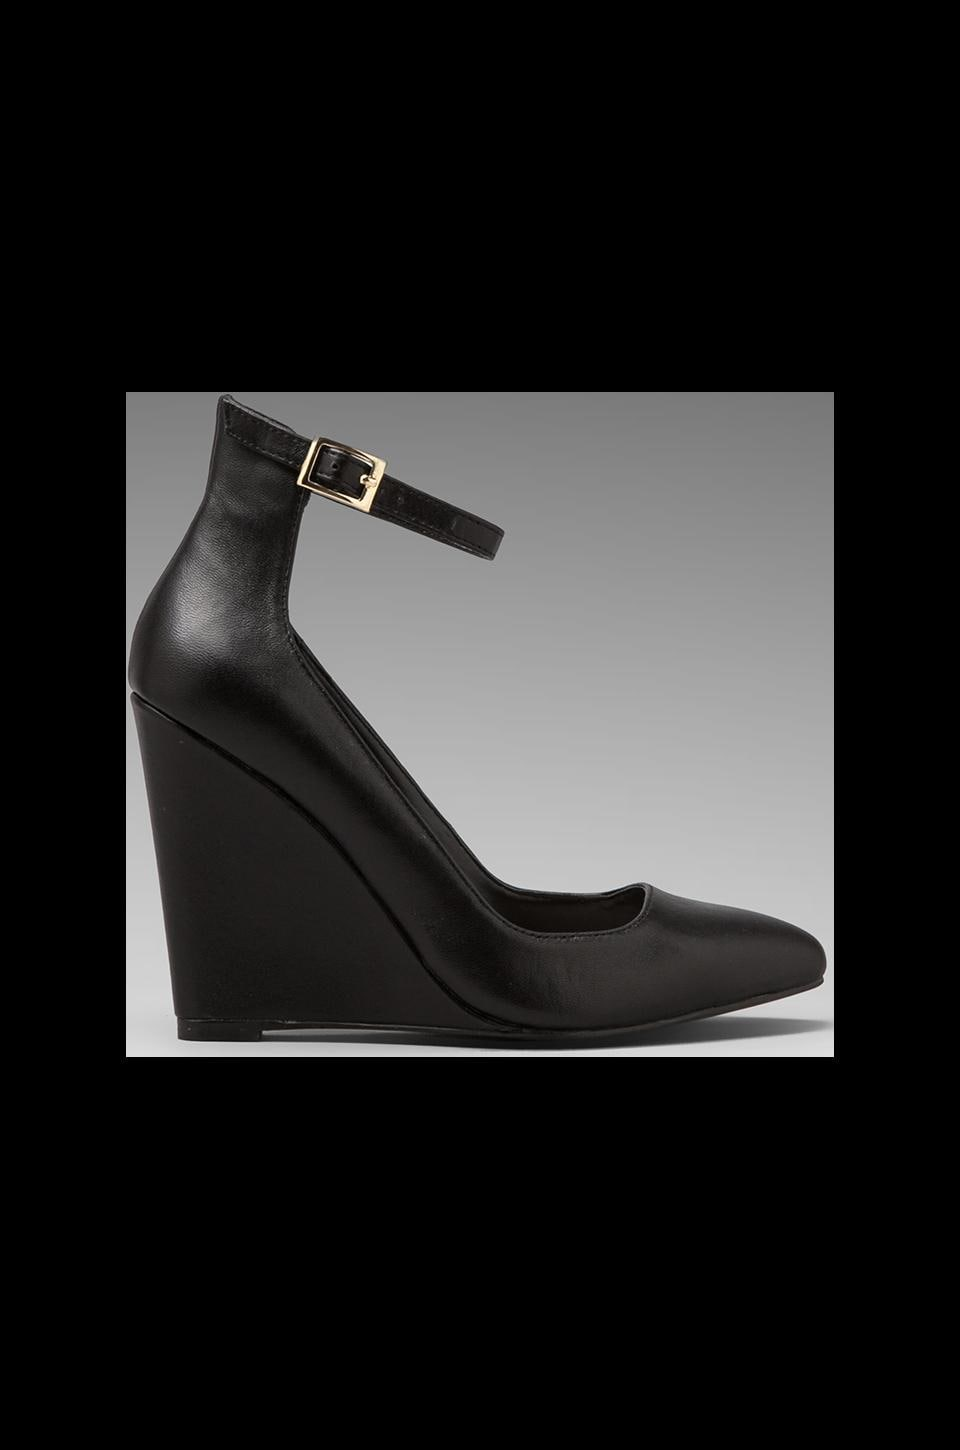 Steven Wisty Wedge in Black